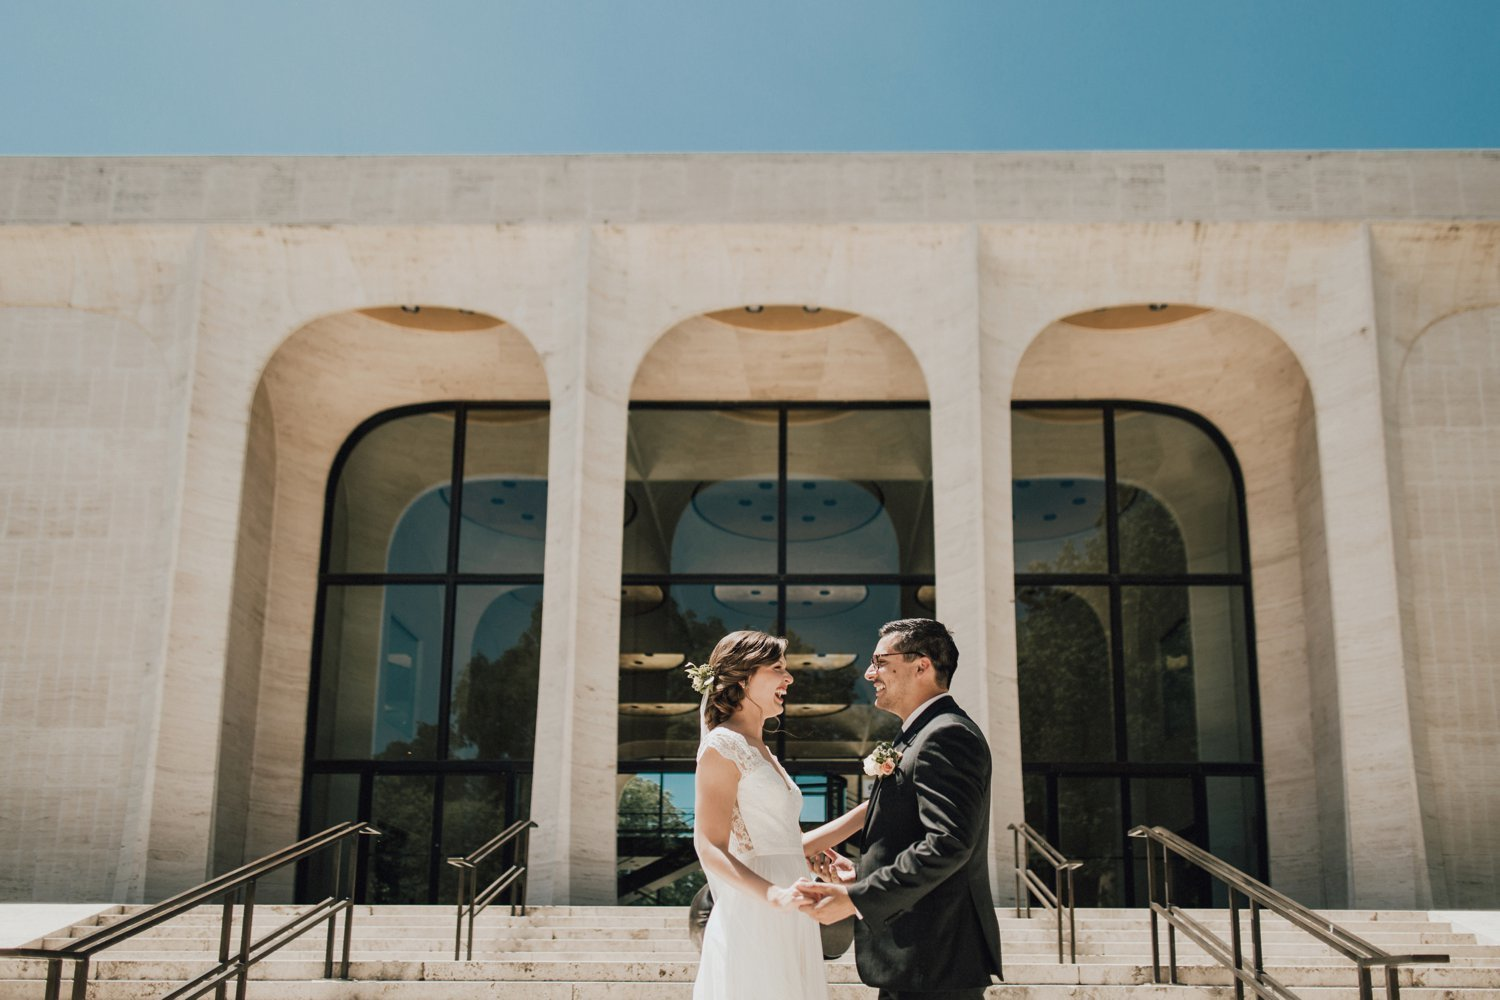 Kansas City Salt Lake City Destination Wedding Photographer_0004